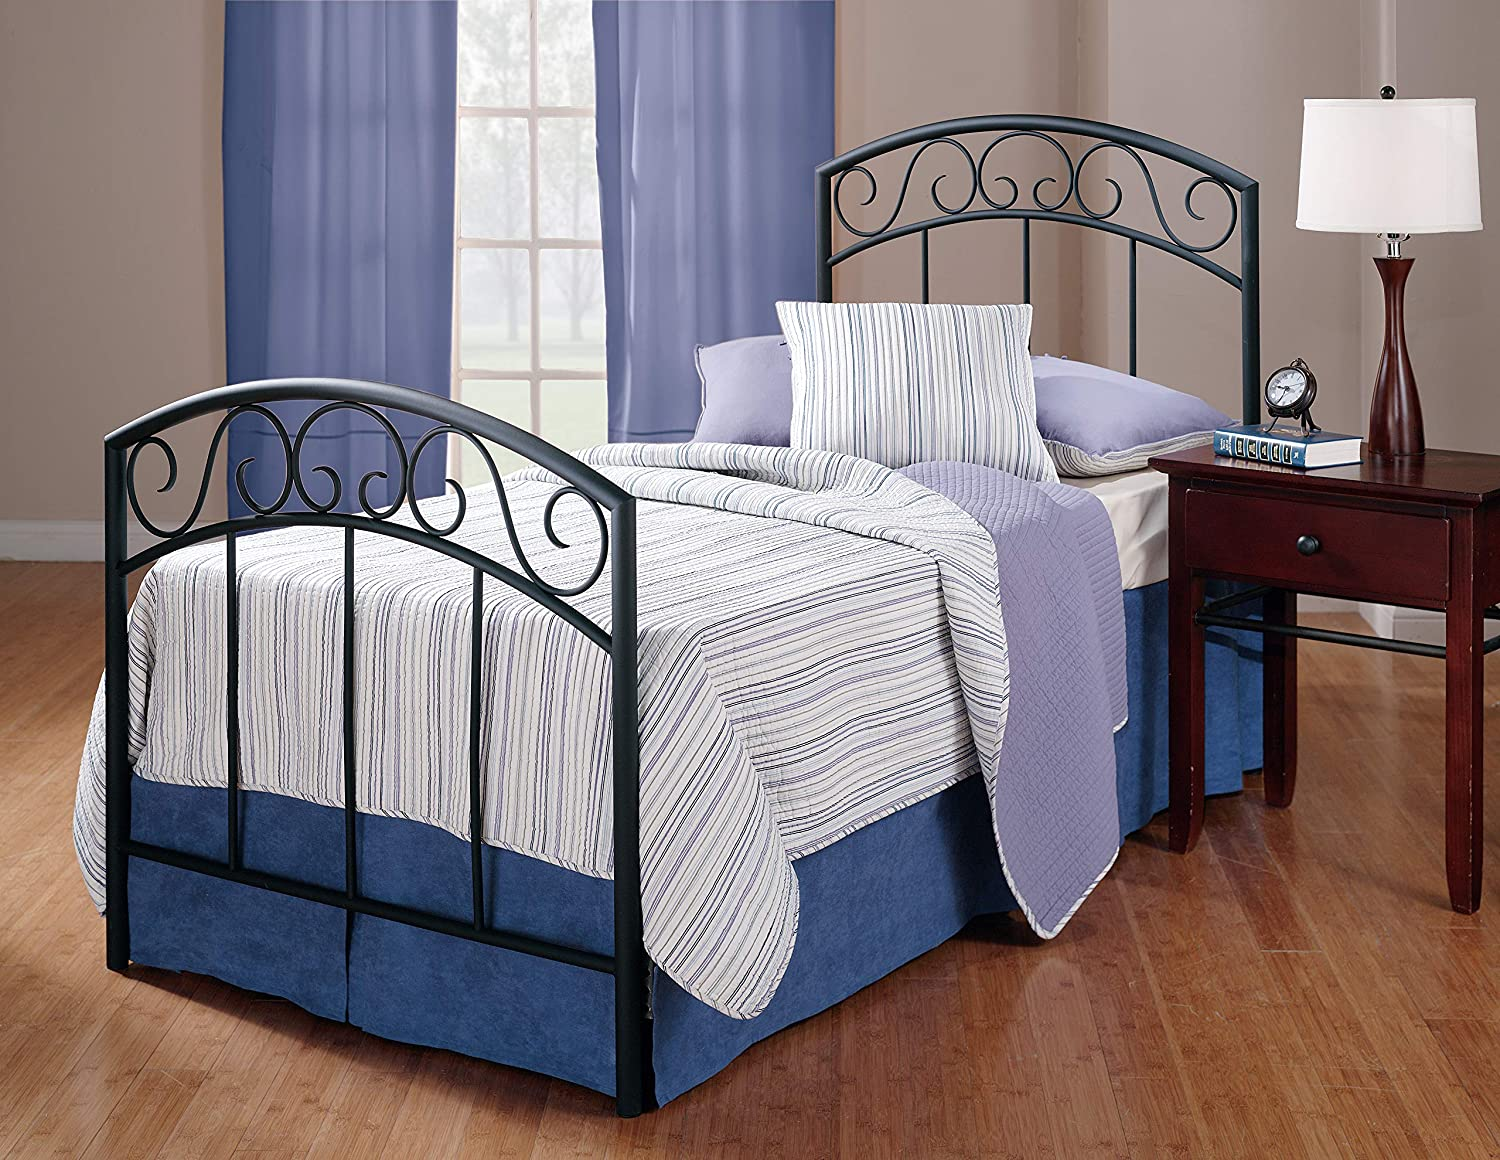 Hillsdale Furniture Wendell Bed Set with Rails, Twin, Textured Black